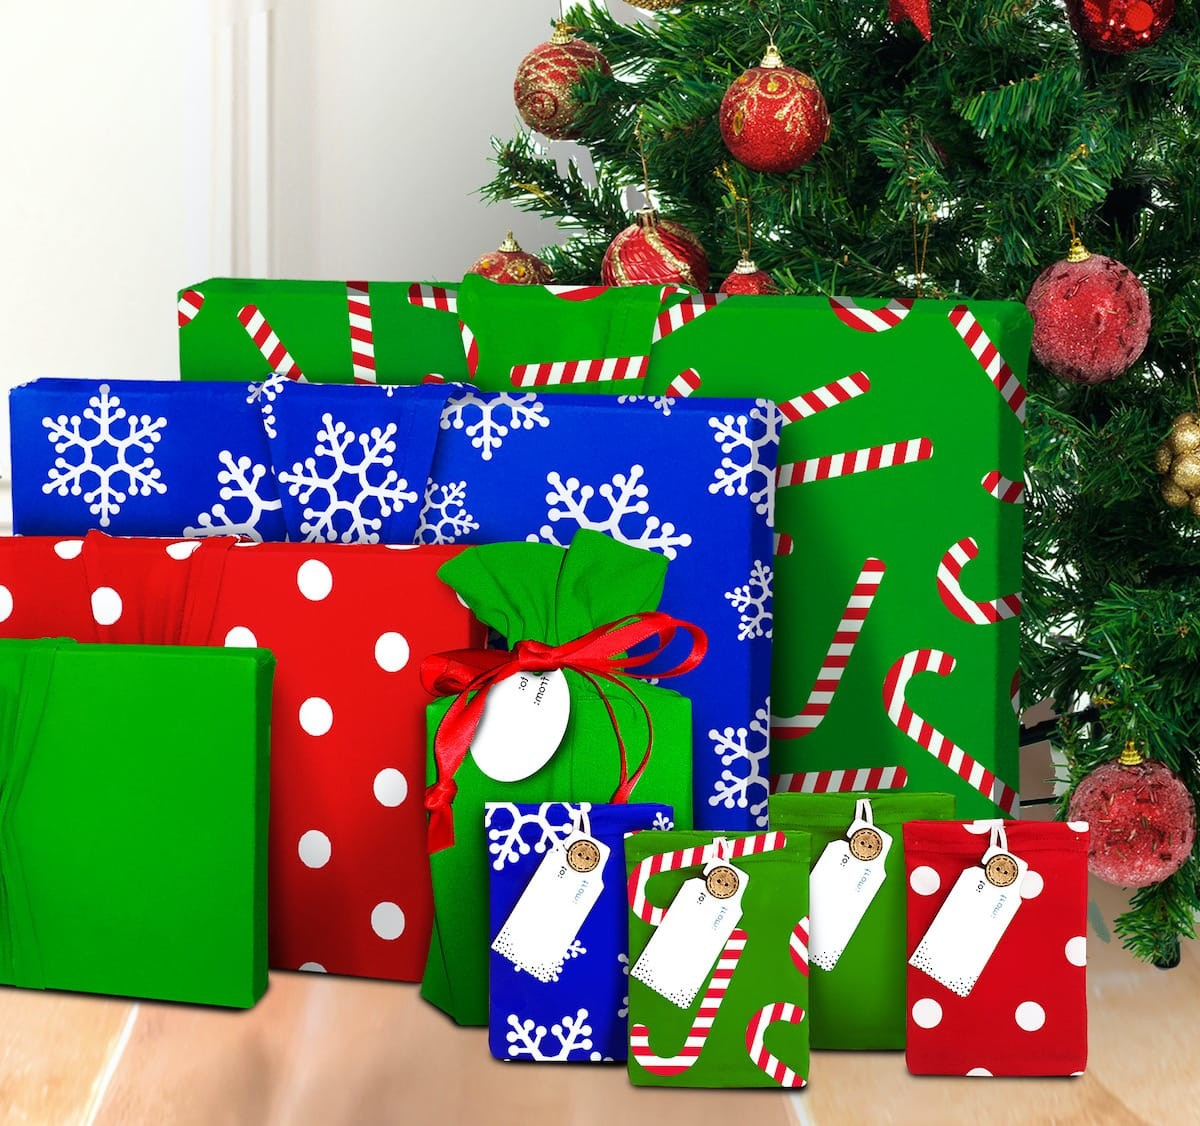 Wrapeez reusable wrapping paper saves you time, hassle, and mess